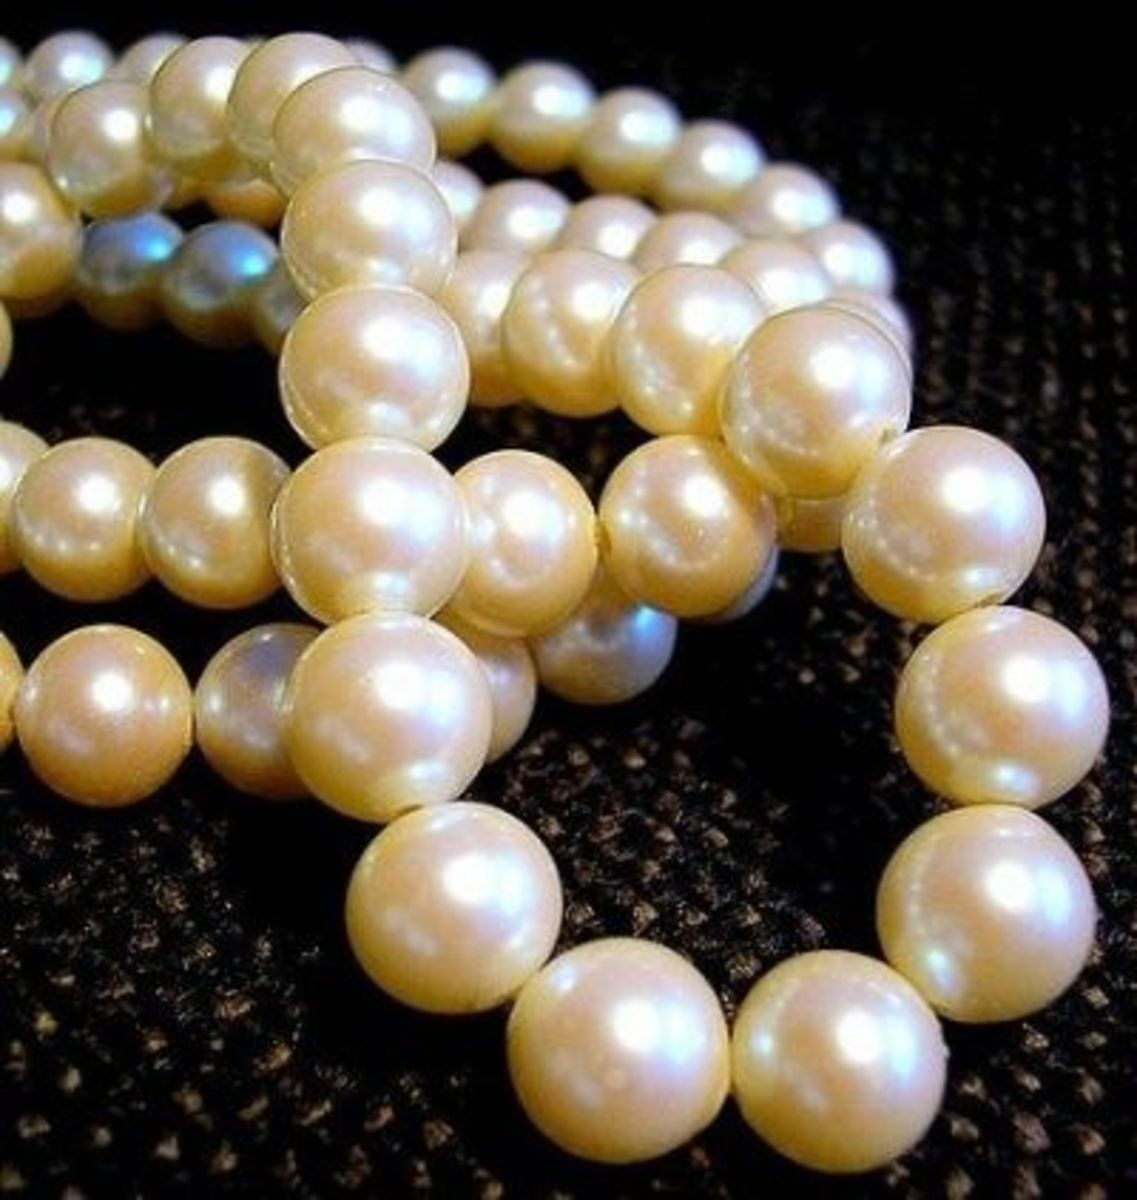 ... and they are more valuable than the pearls in the previous photo because they are well-matched in size, shape, and color. (These are genuine but unstrung and that's probably why they aren't yet knotted.)